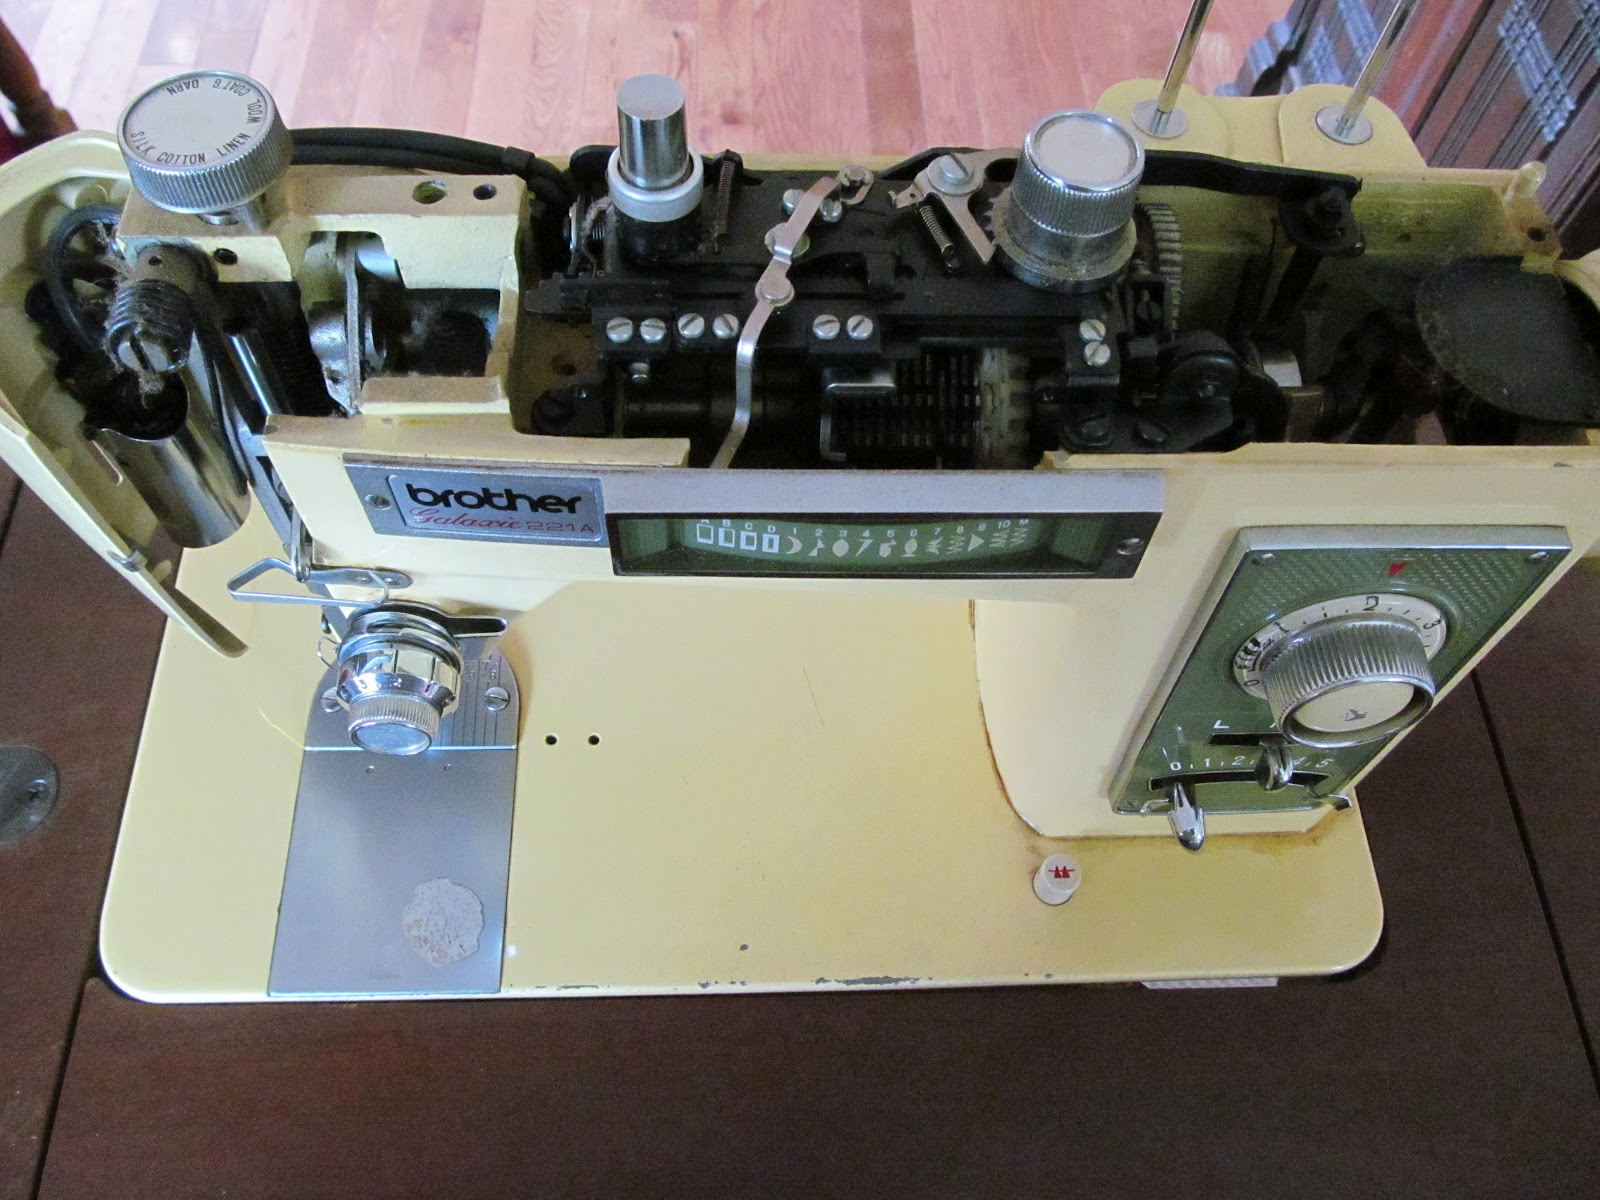 Trampled By Geese Vintage Sewing Machine Brother Galaxie 221a Gutsy Free Threading Diagrams This Particular Was Owned And Used The School Board For Many A Year After They Were Finished With It Passed Through Hands Of Couple